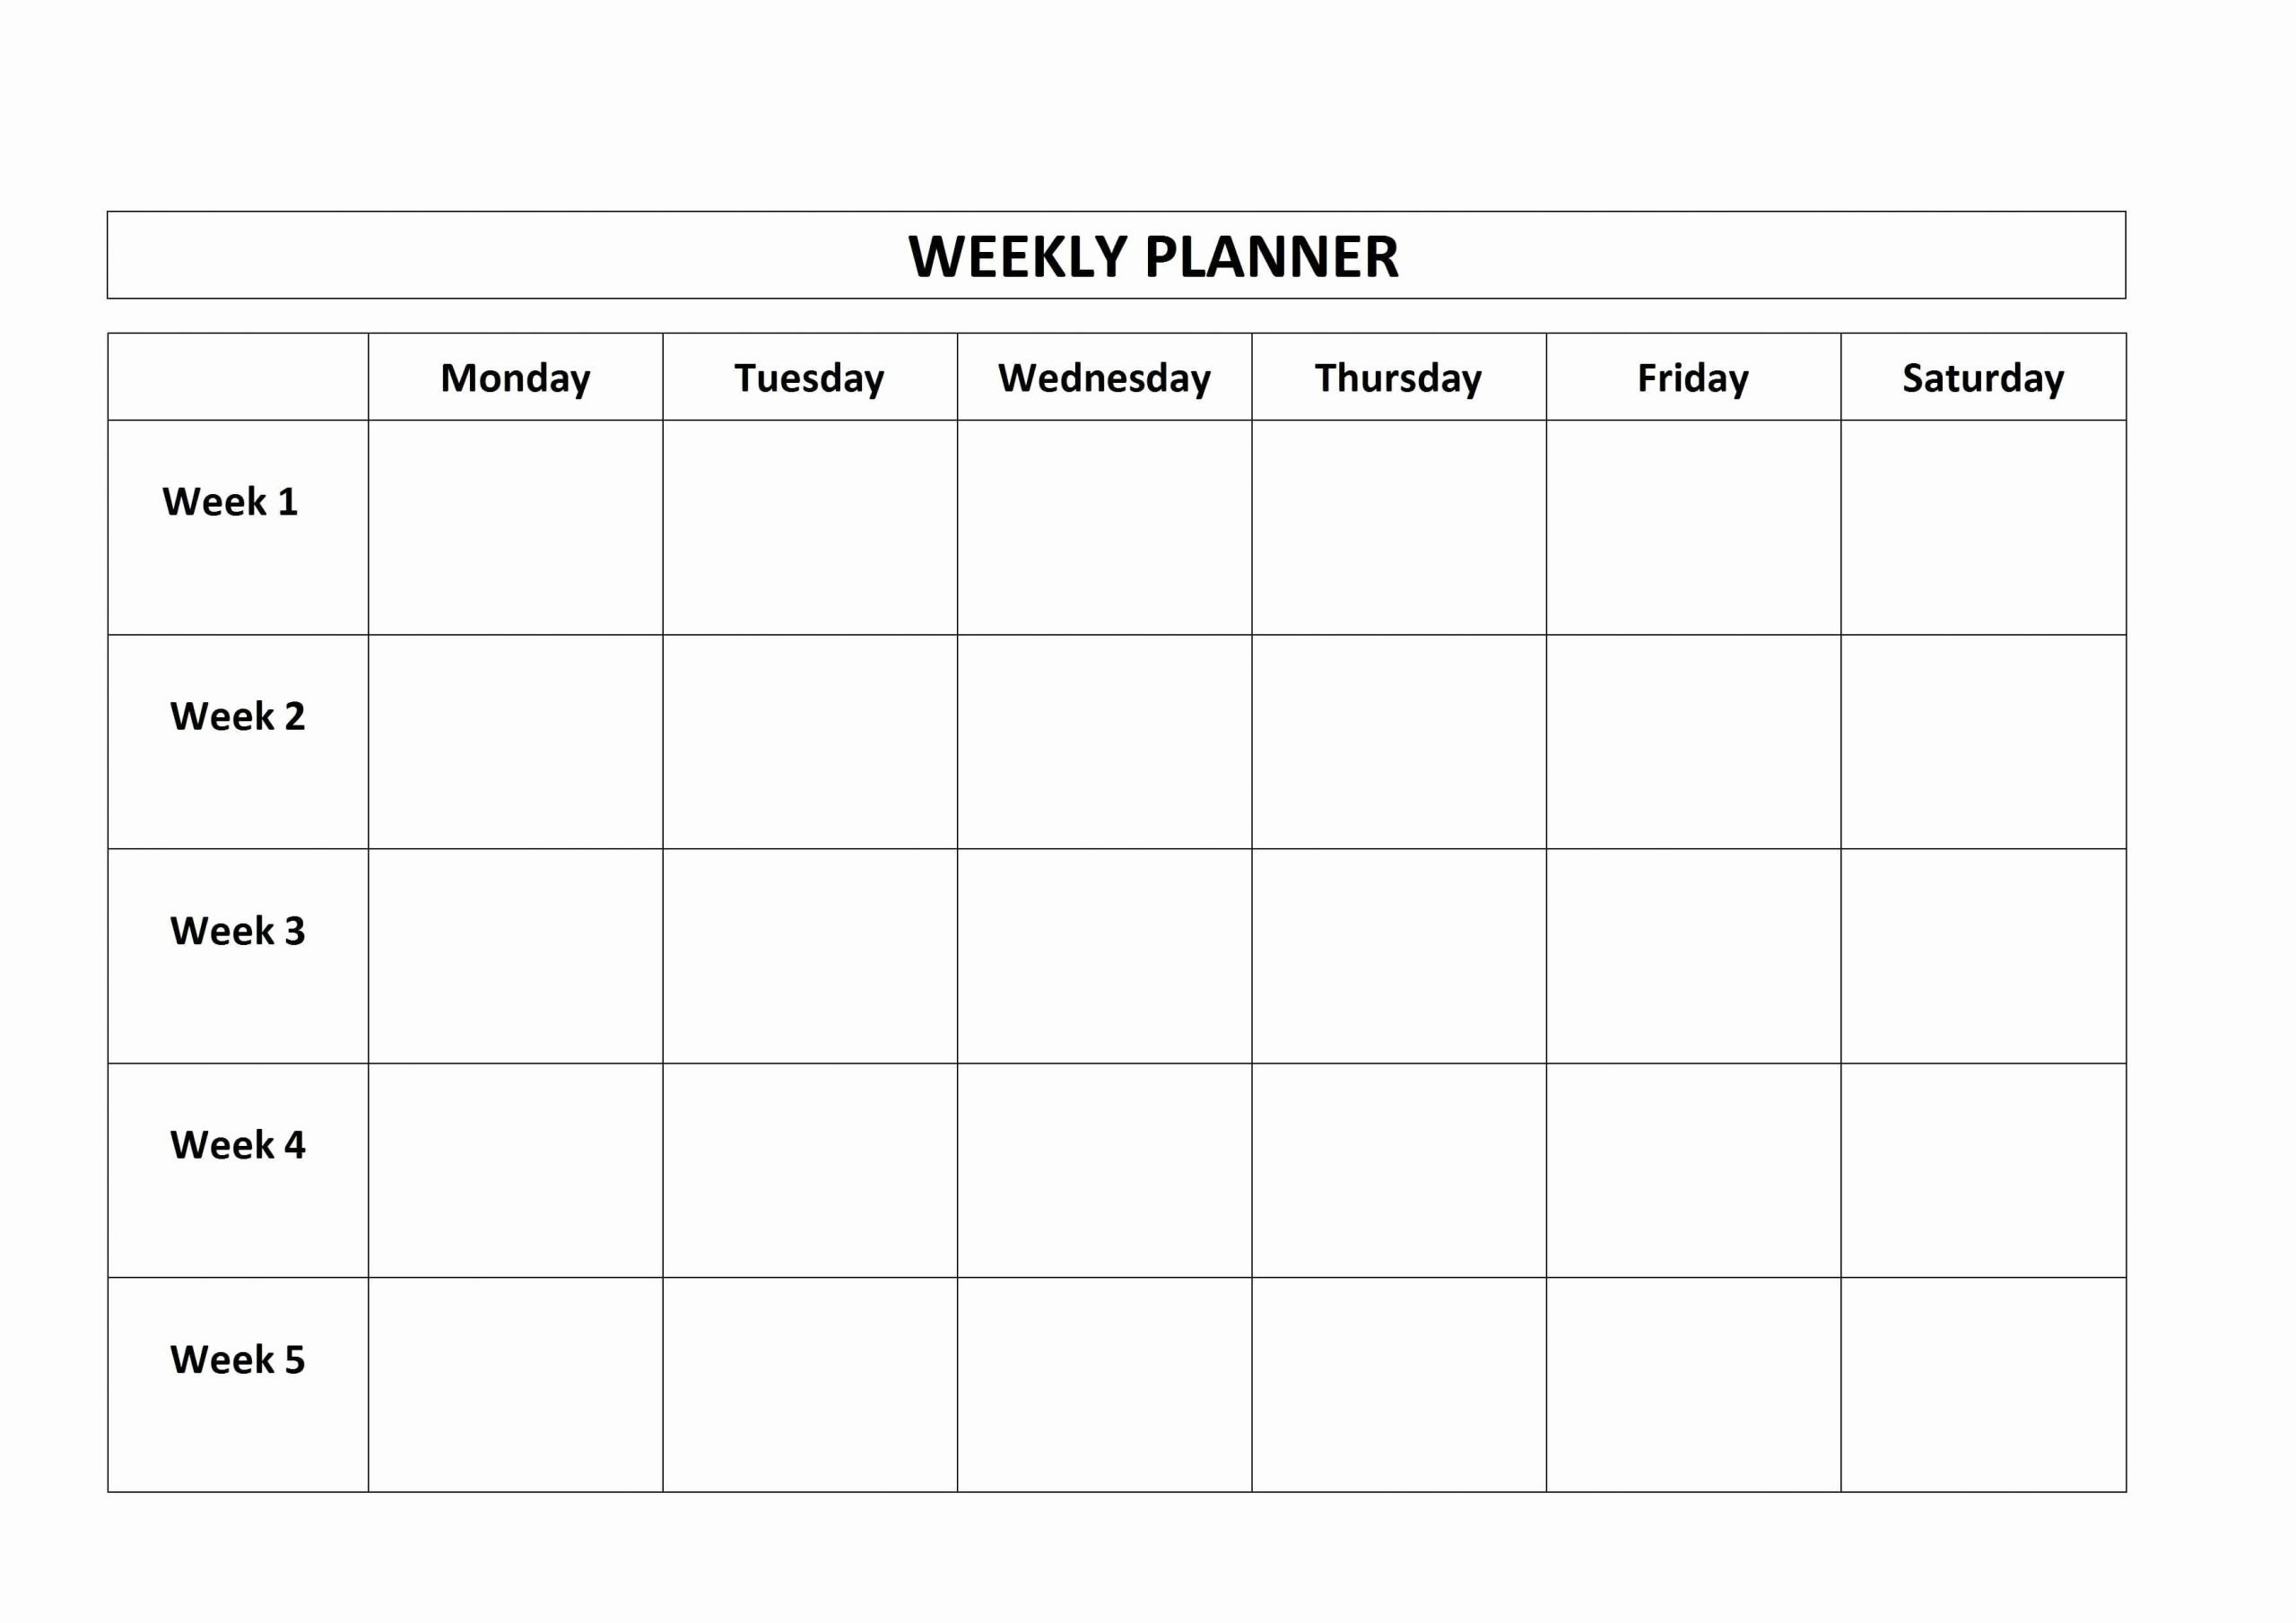 Monday to Friday Schedule Template Fresh 5 Day Calendar Template Vaydileforic Blank